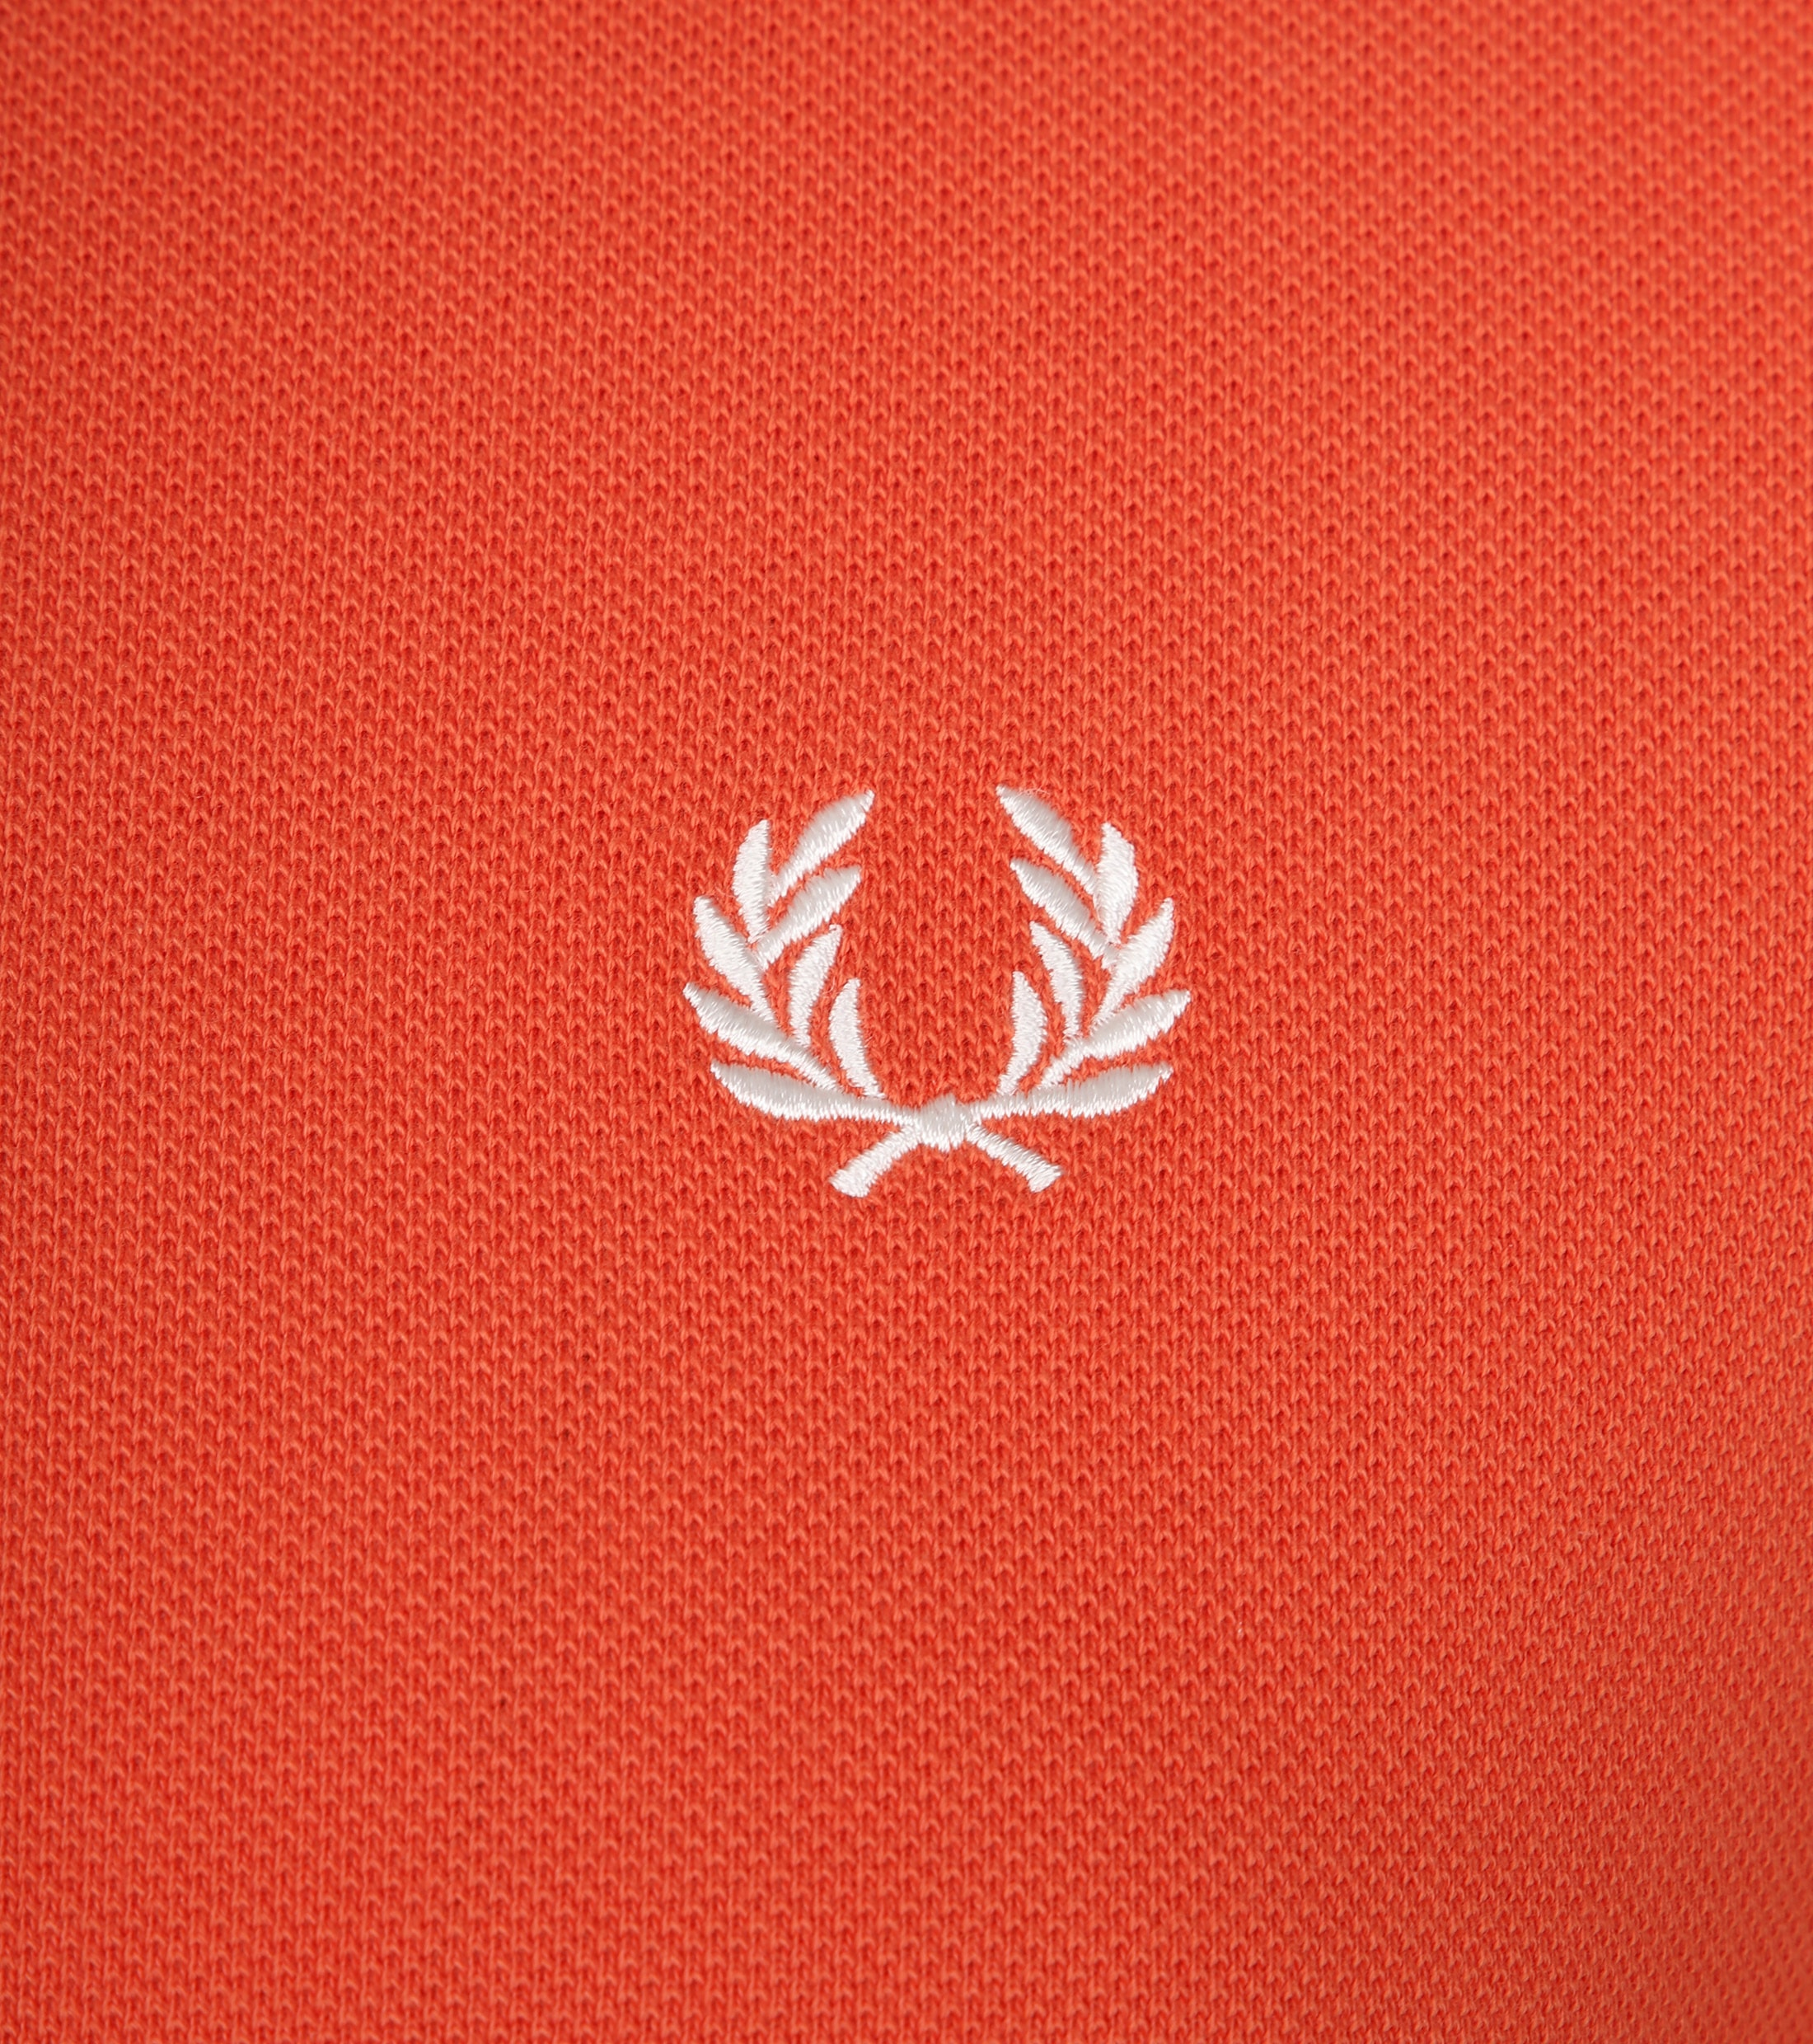 Fred Perry Poloshirt Orange G93 foto 1